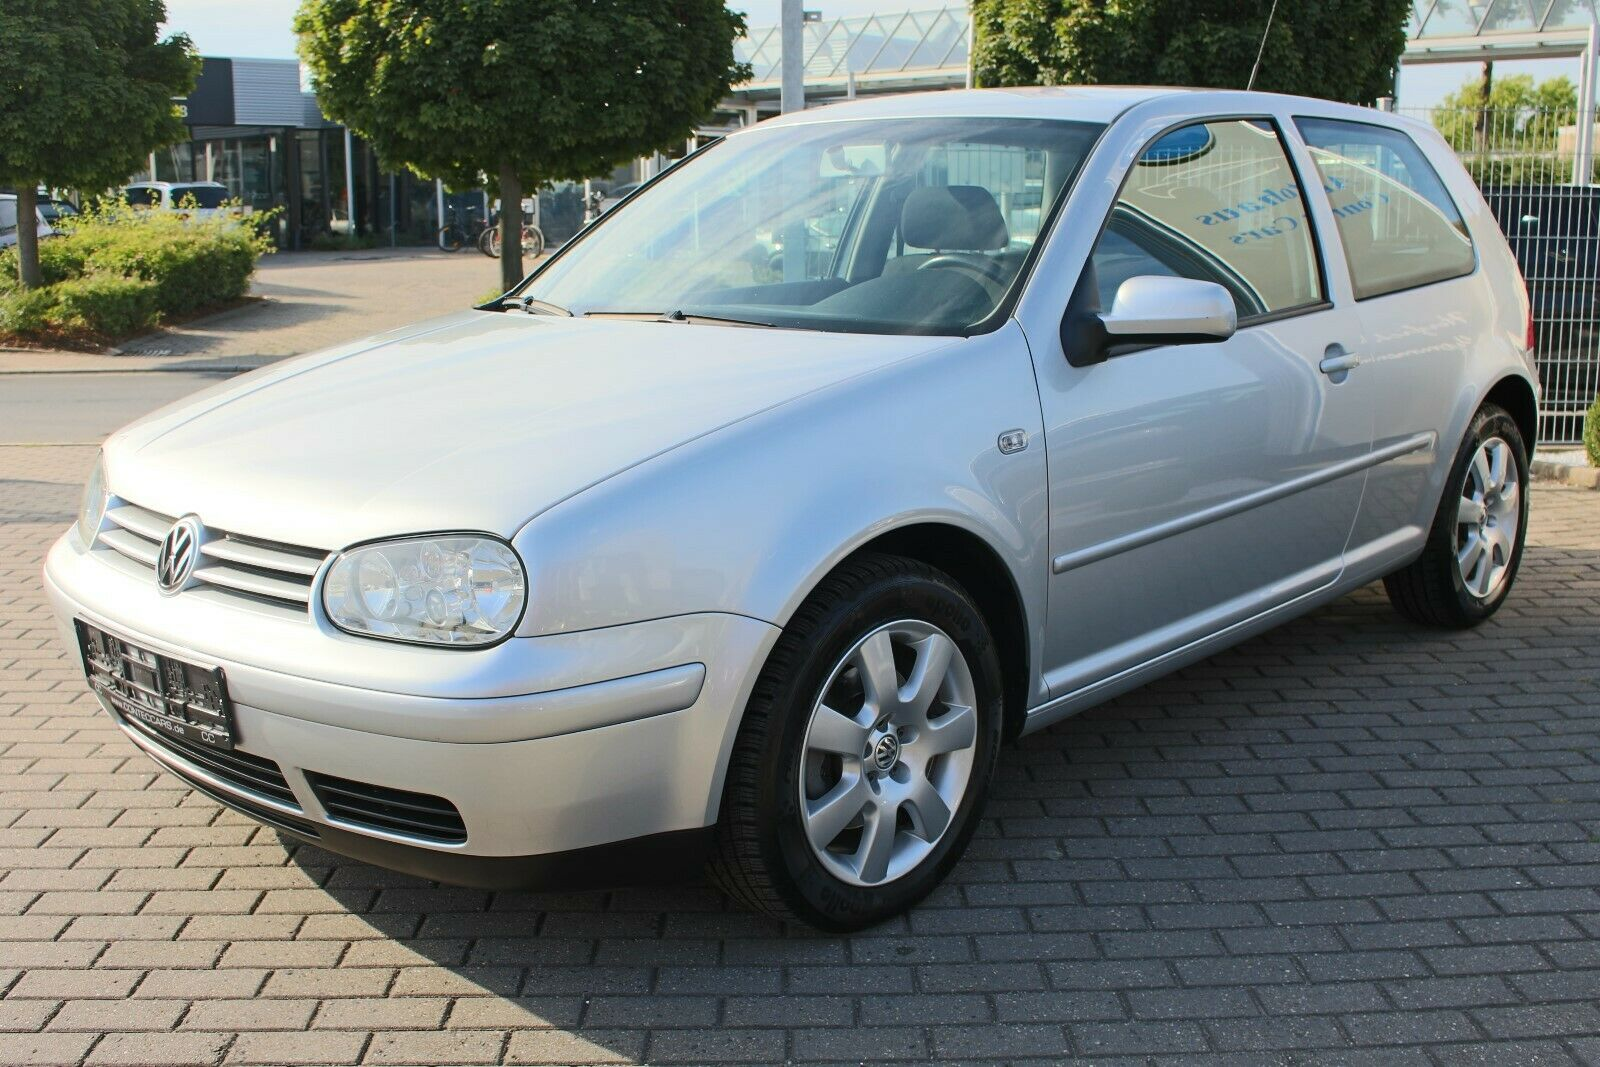 VW Golf IV Lim. 1.6FSI Pacific